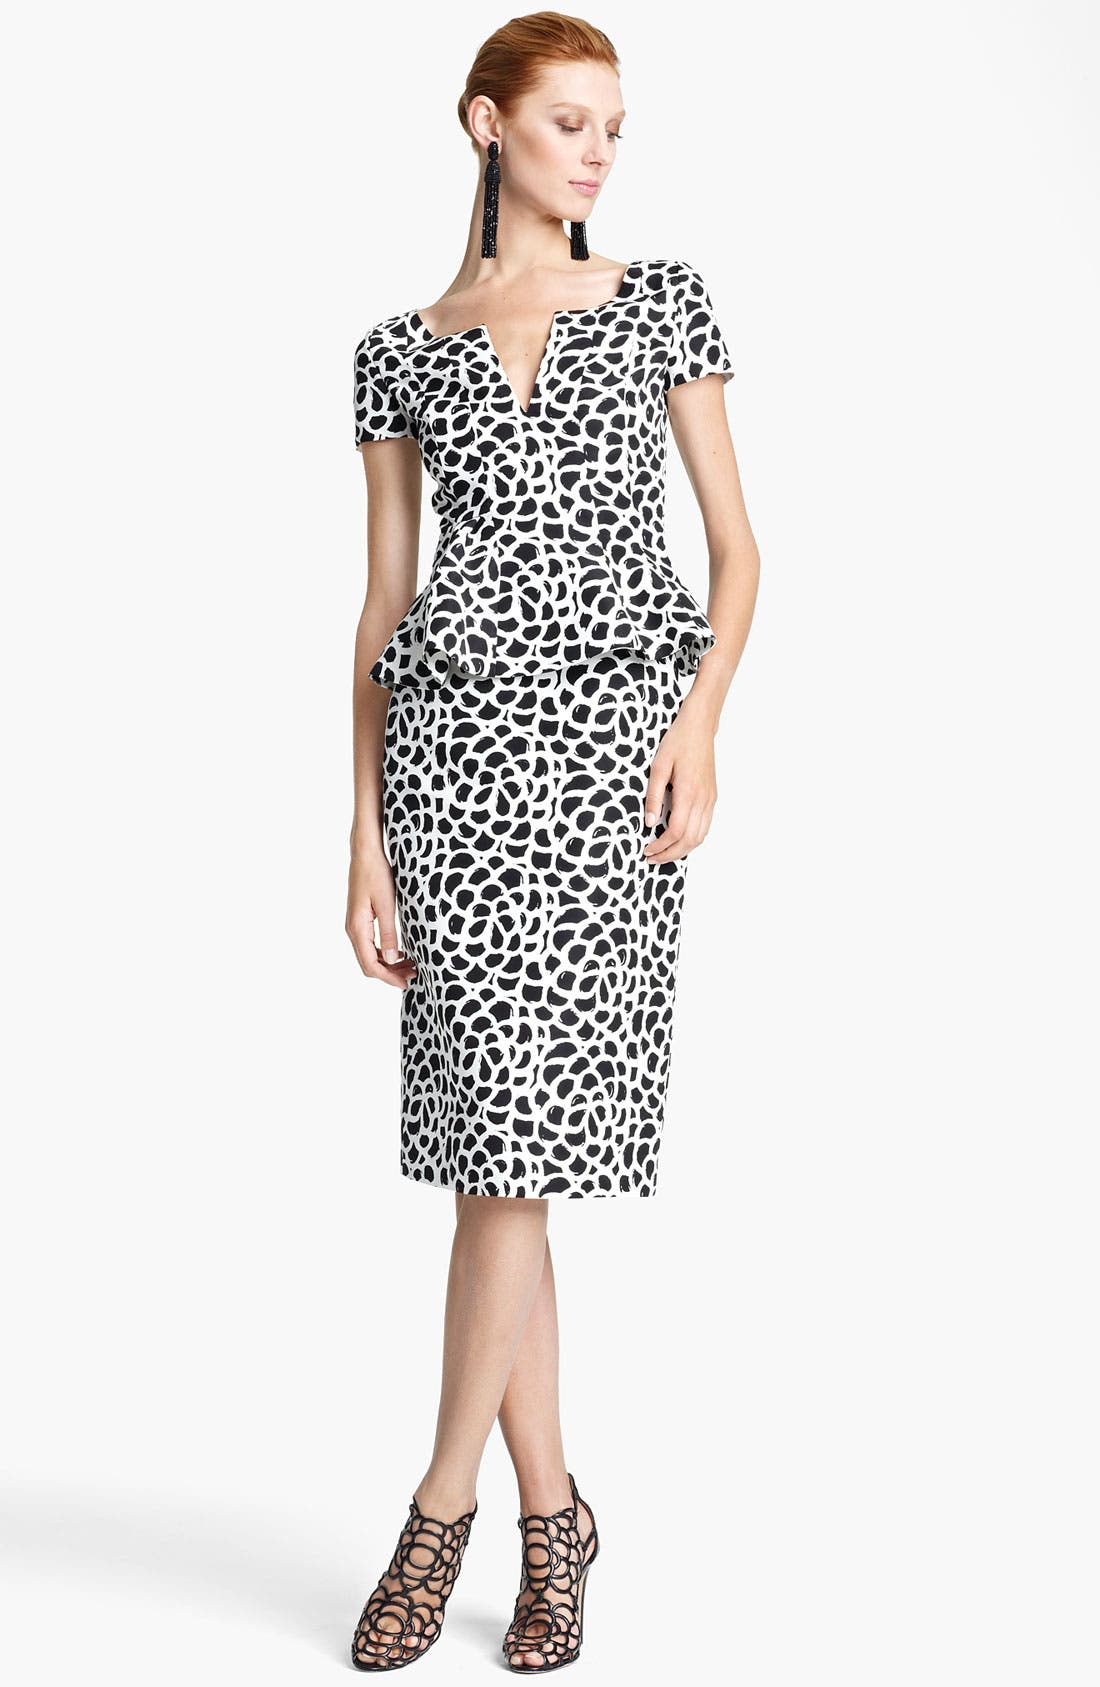 Alternate Image 1 Selected - Oscar de la Renta Print Silk Faille Dress